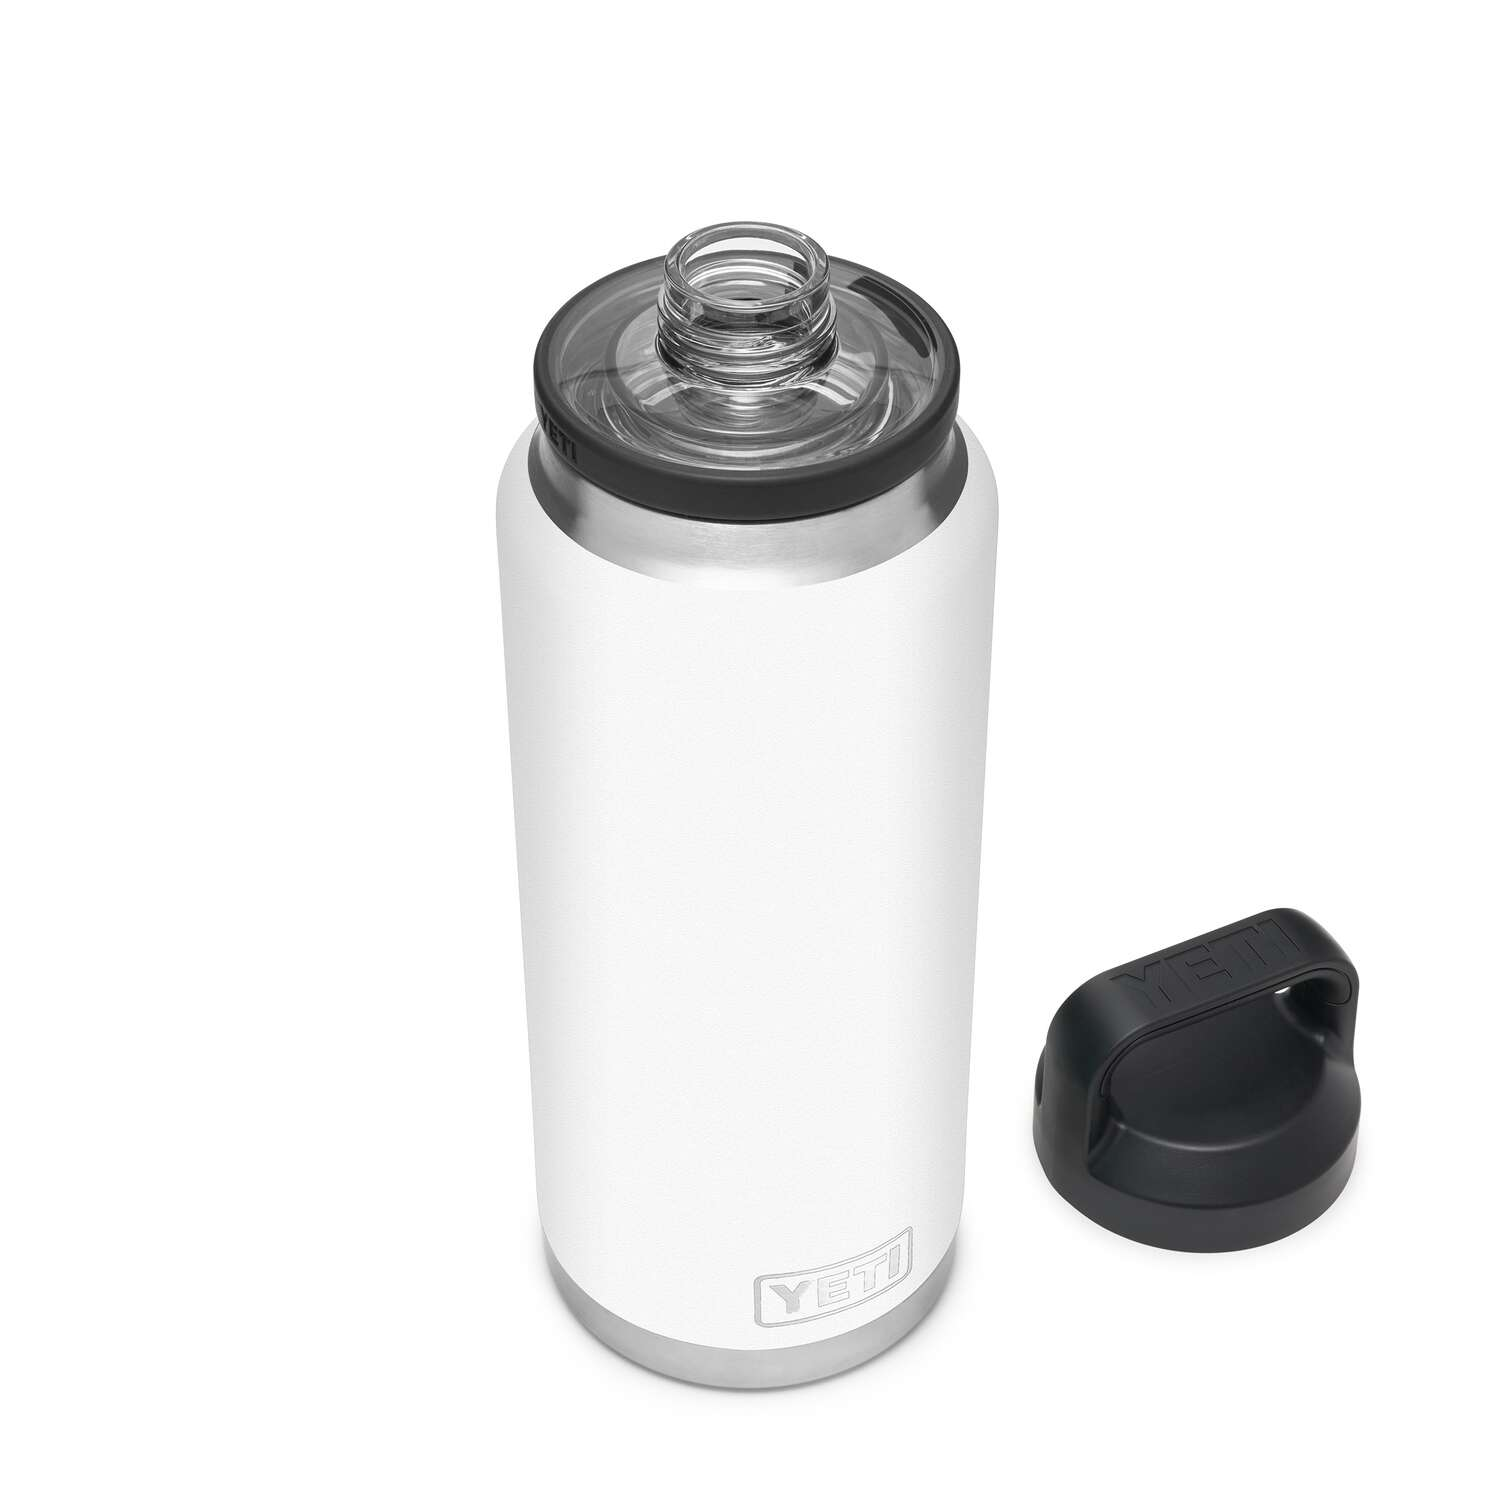 YETI  Rambler  36 oz. Insulated Chug Bottle  White